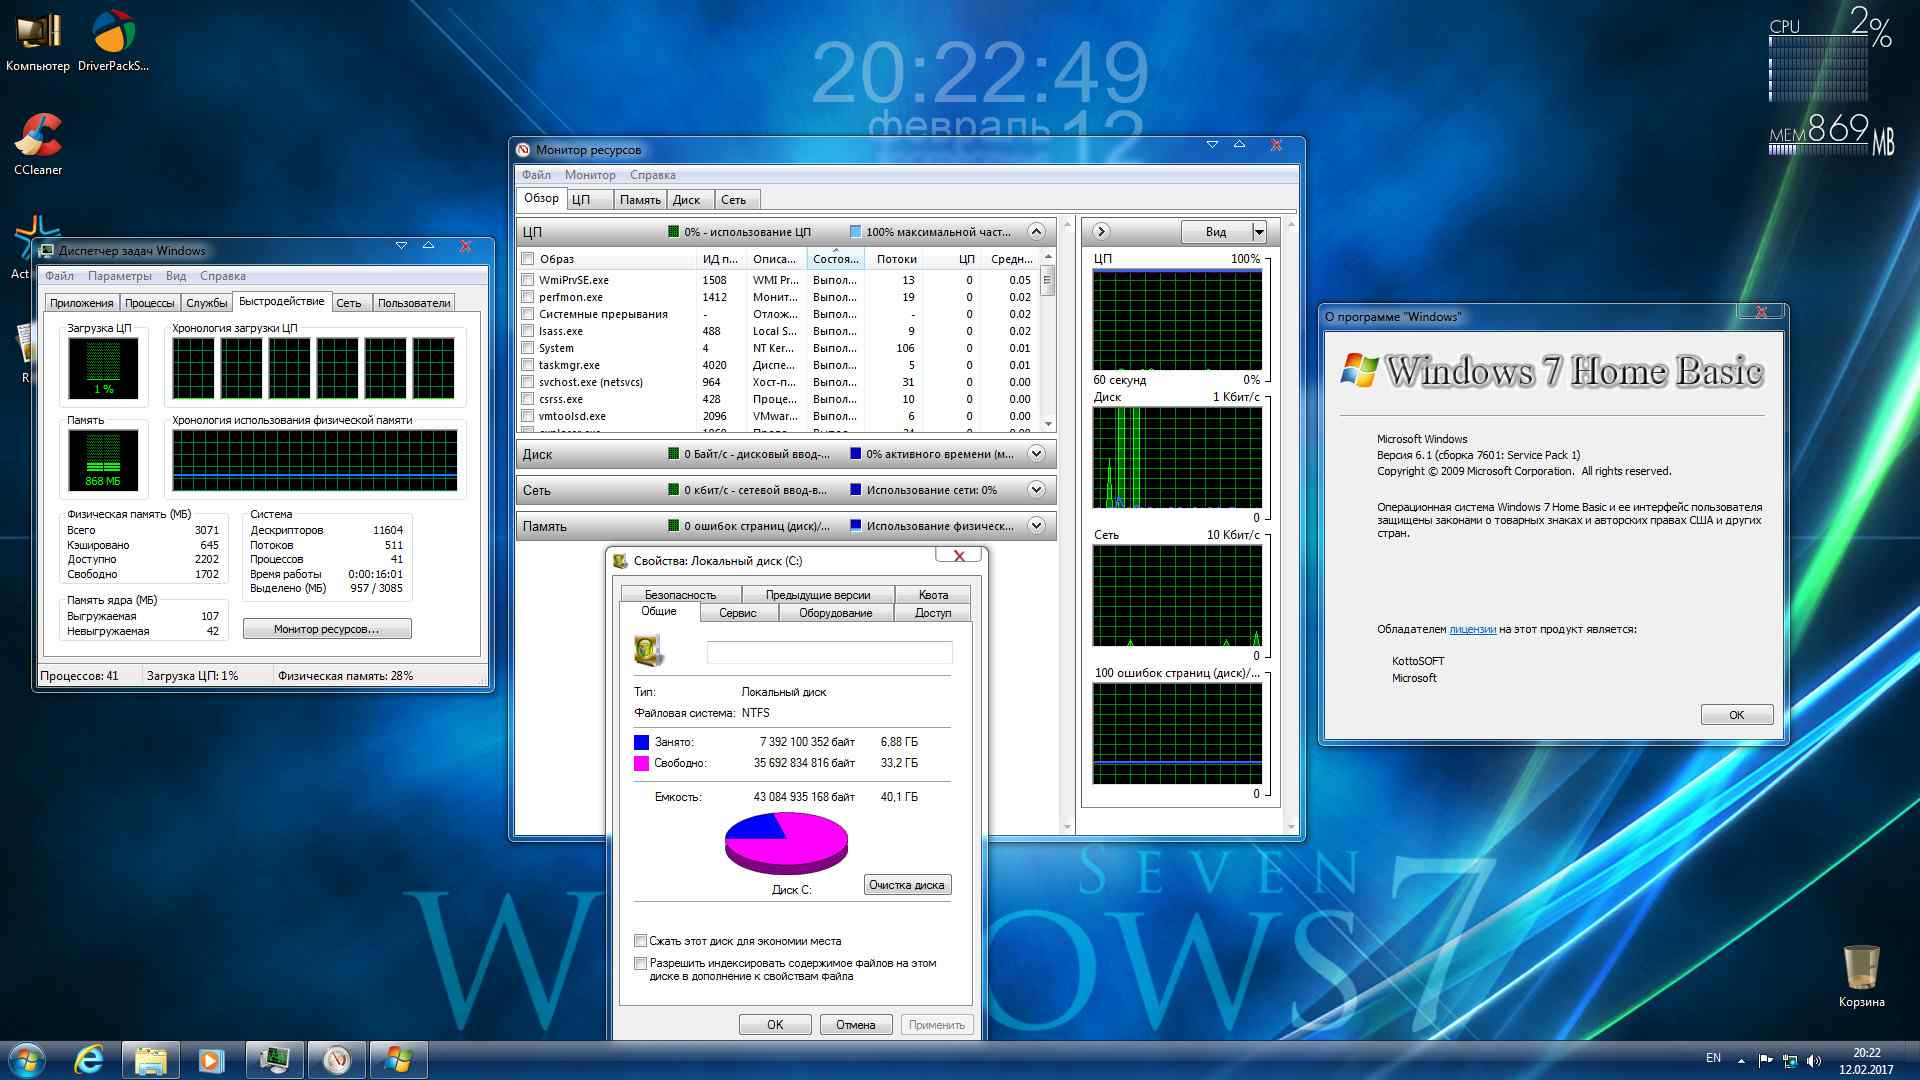 Kunena topic windows 7 download free full version 64 bit kickass here is the windows 7 ultimate iso download free full version for both 32bit and 64bit systems we have given the single click direct link to ccuart Image collections